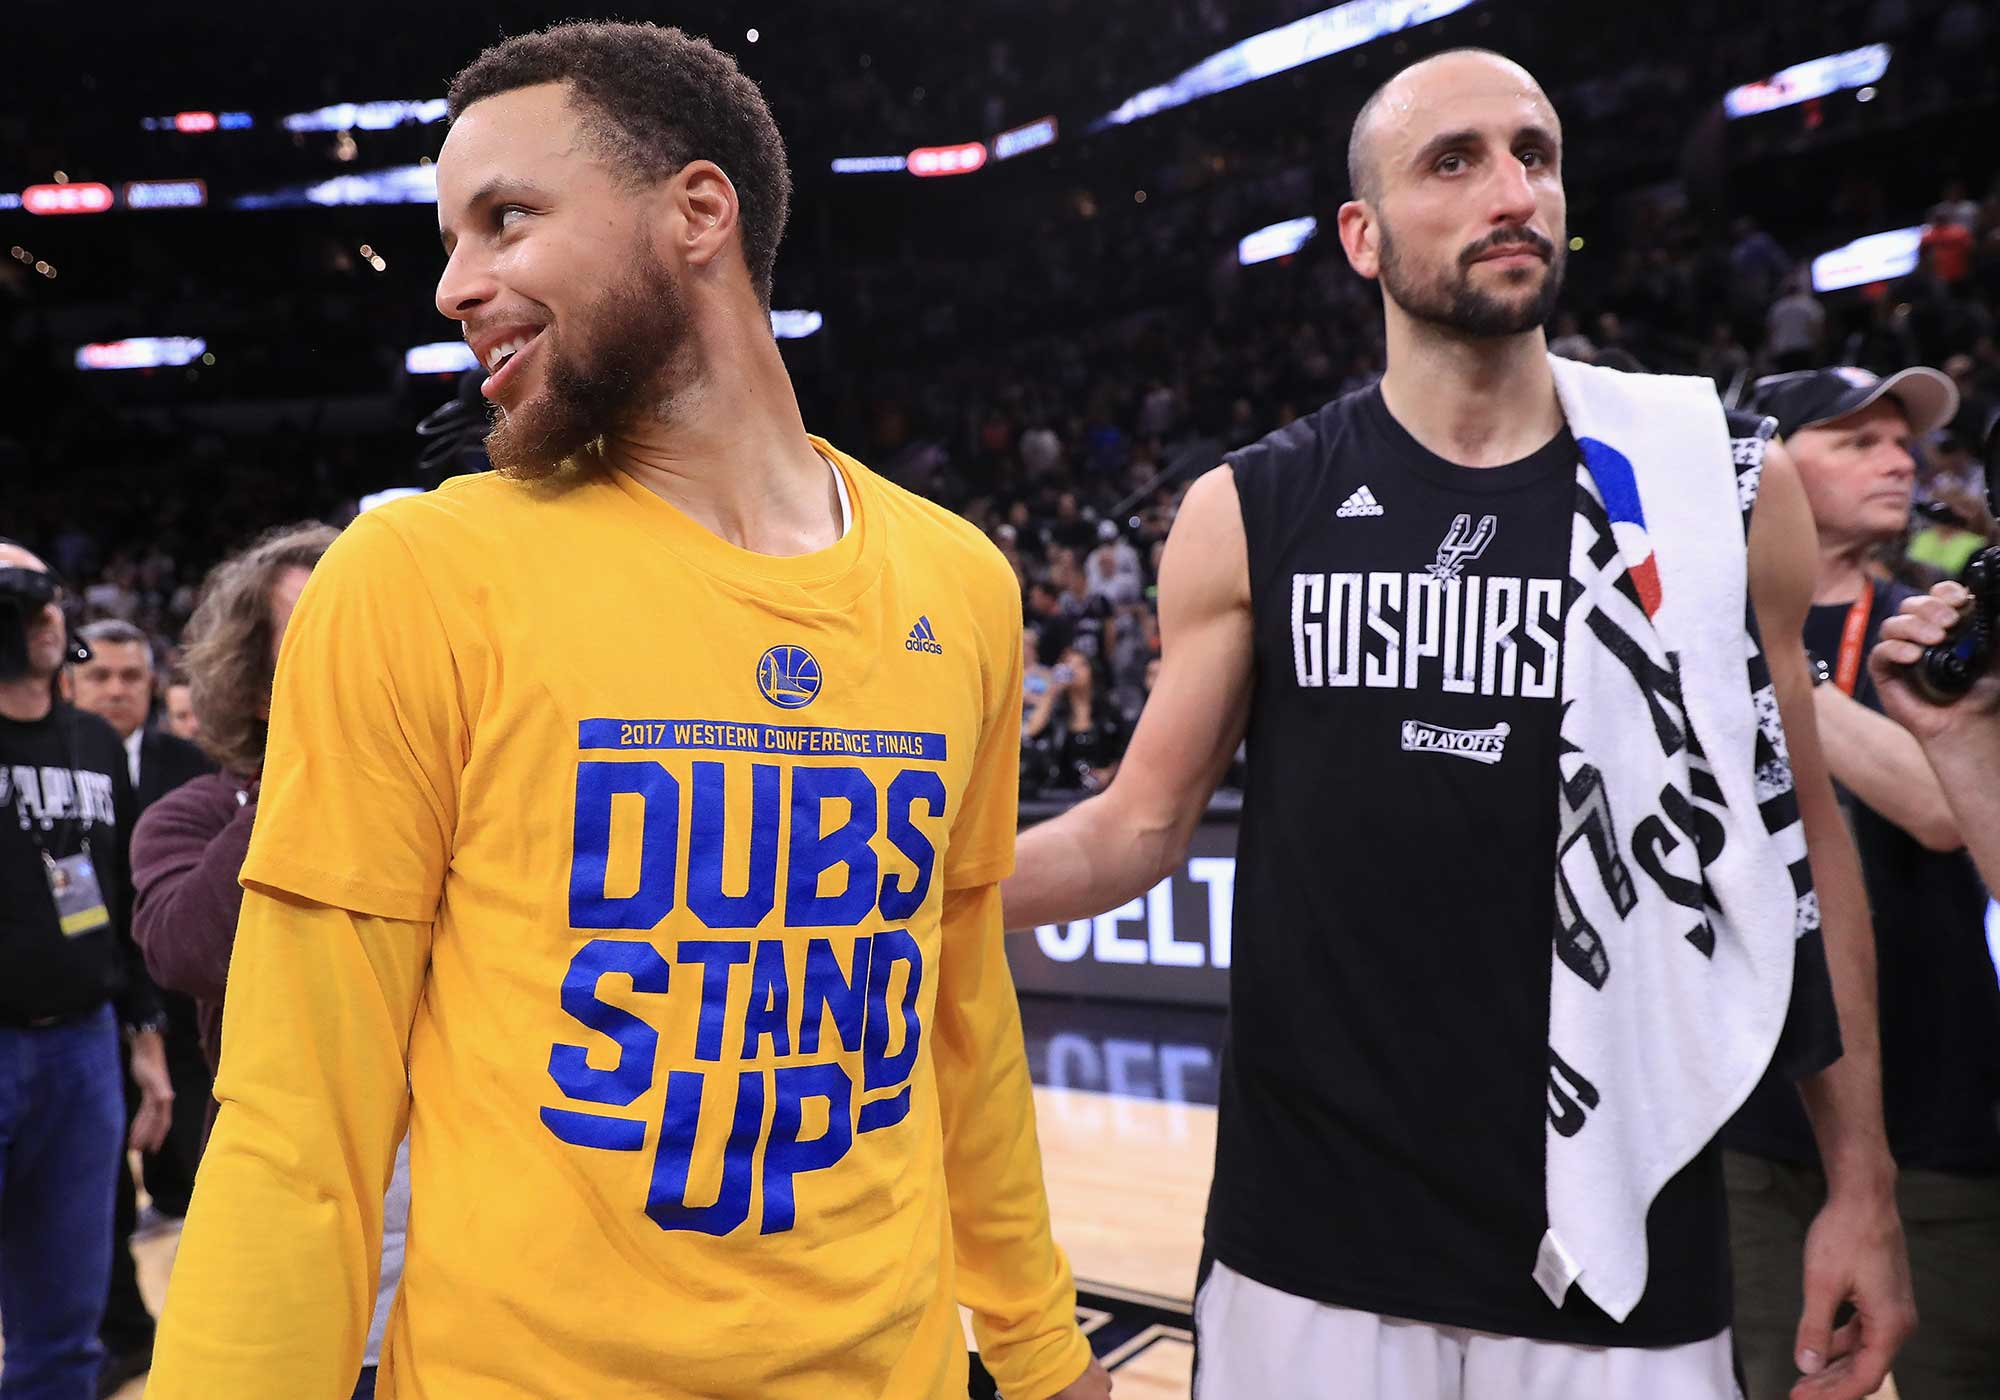 Stephen Curry and Manu Ginobili